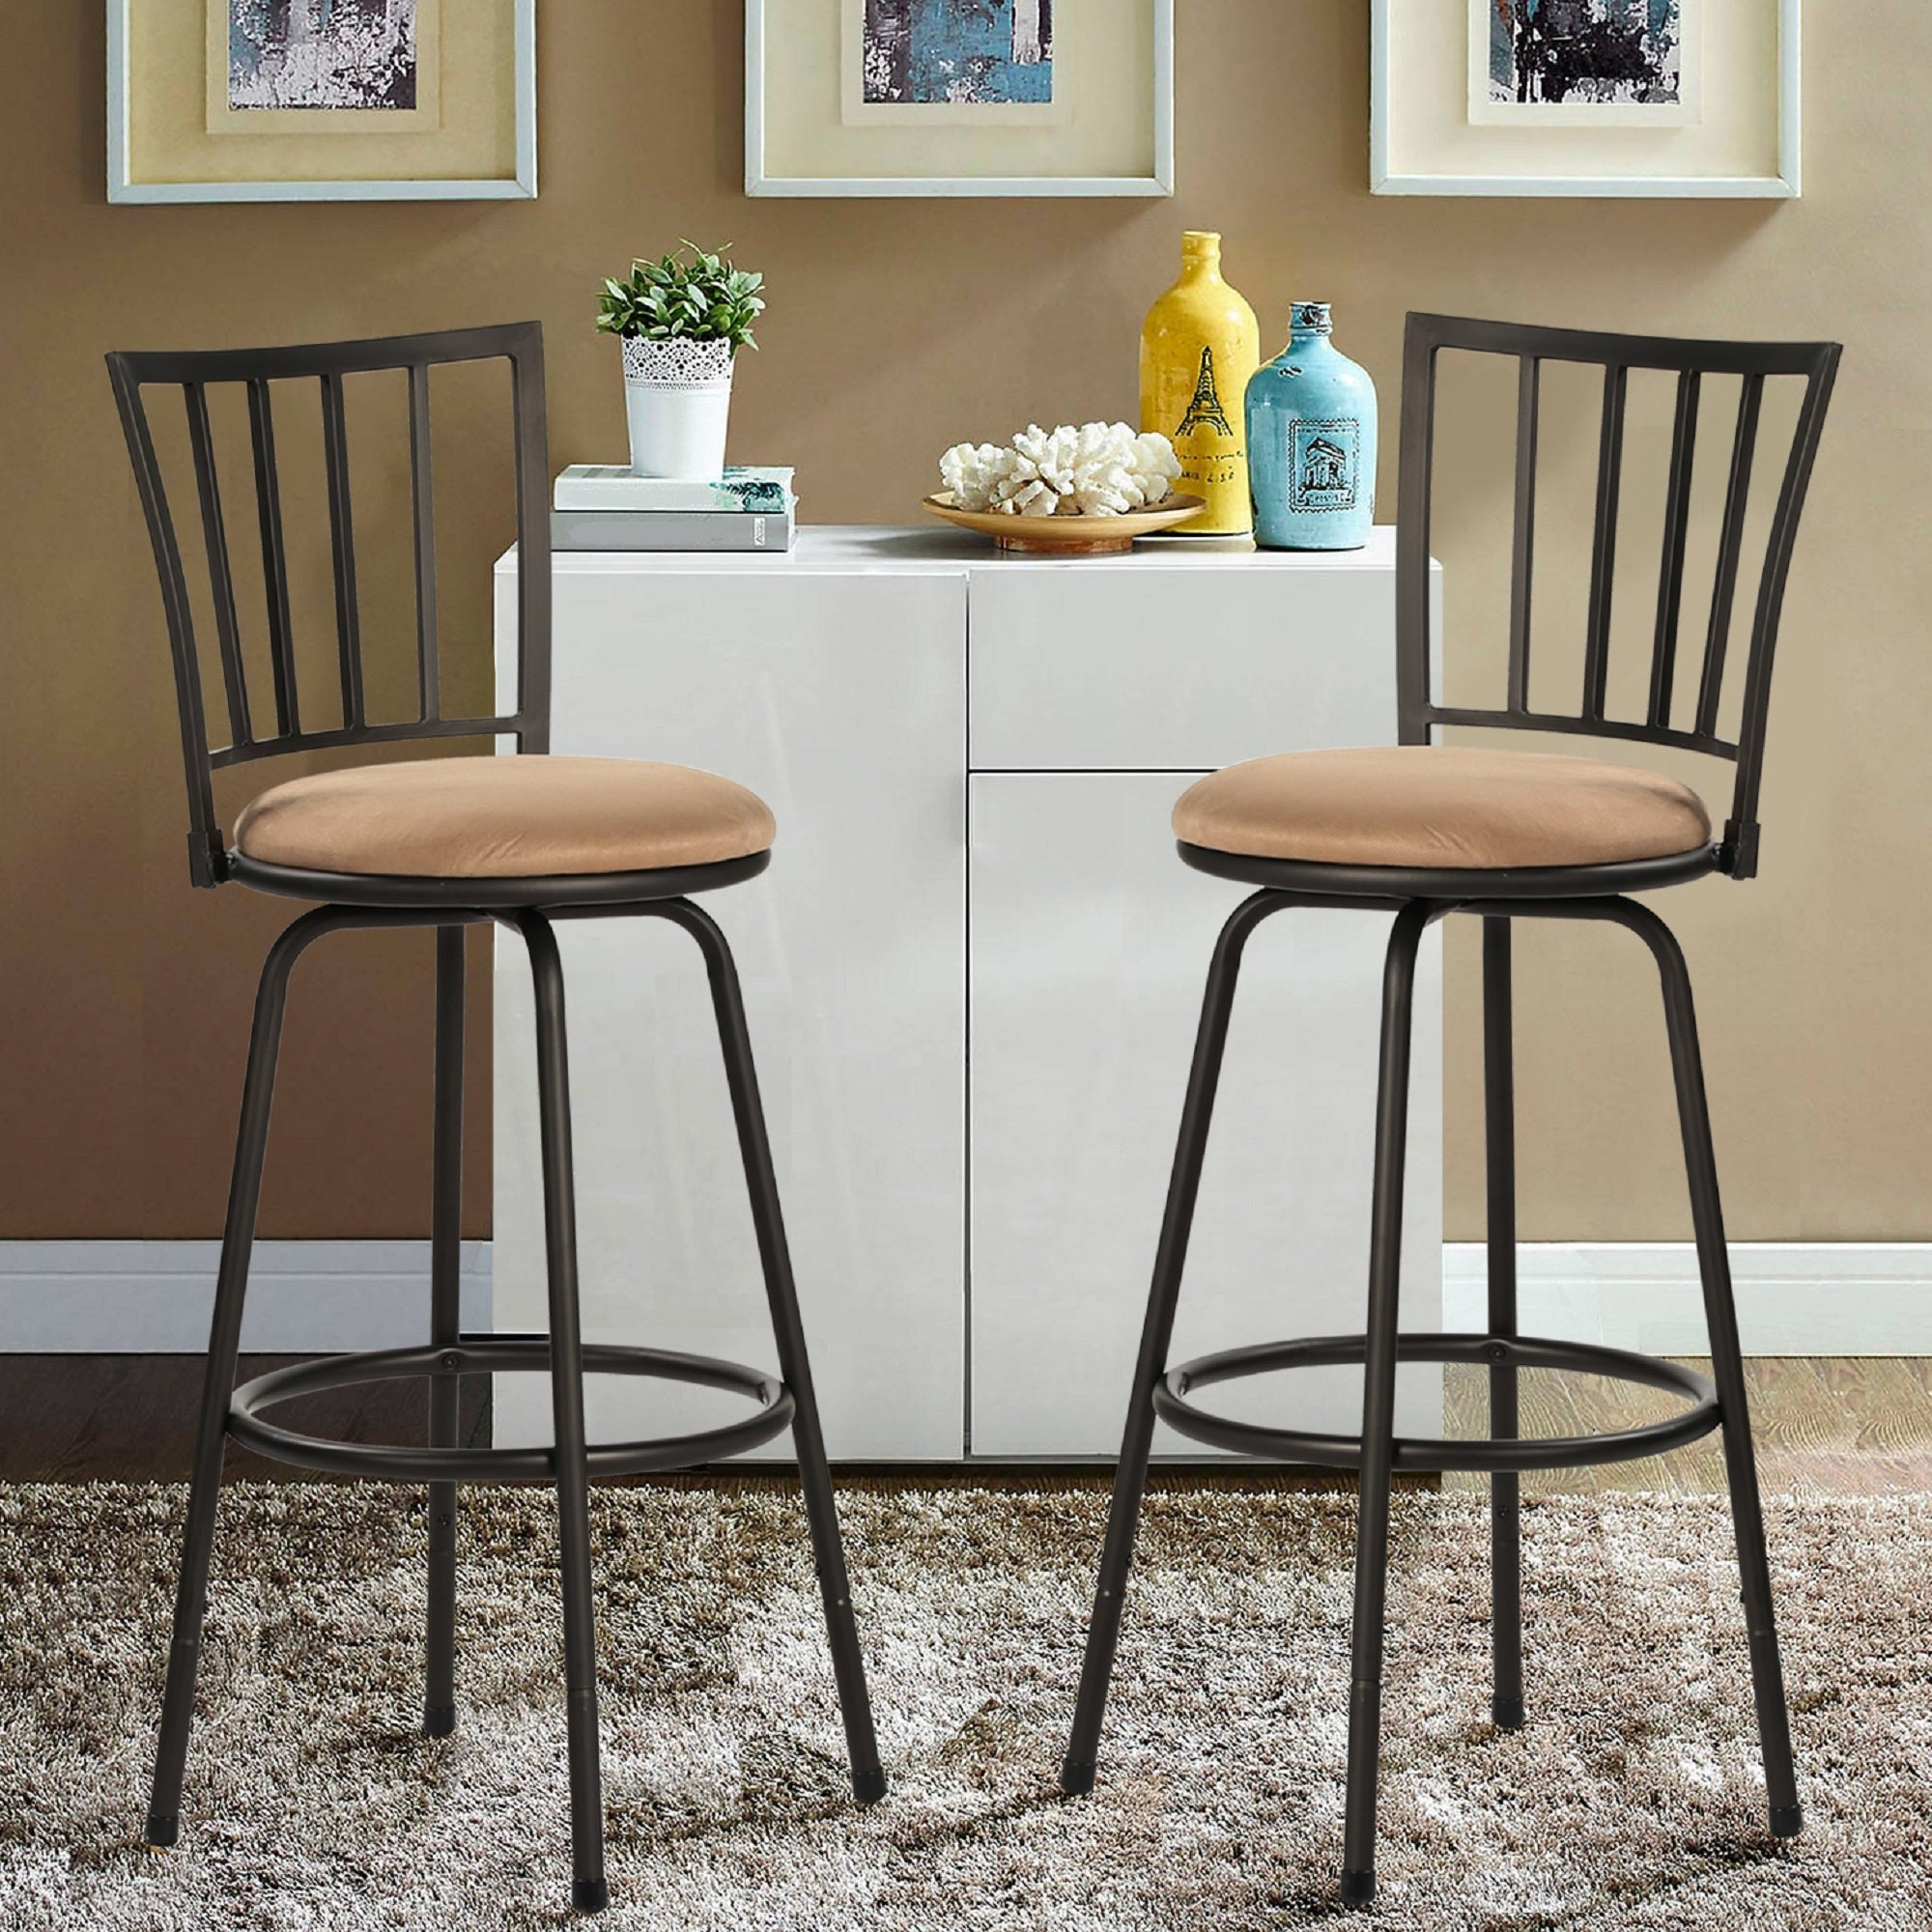 Shop Black Friday Deals On Vecelo Set Of 2 Round Seat Bar Counter Height Adjustable Metal Bar Stool Overstock 30655860